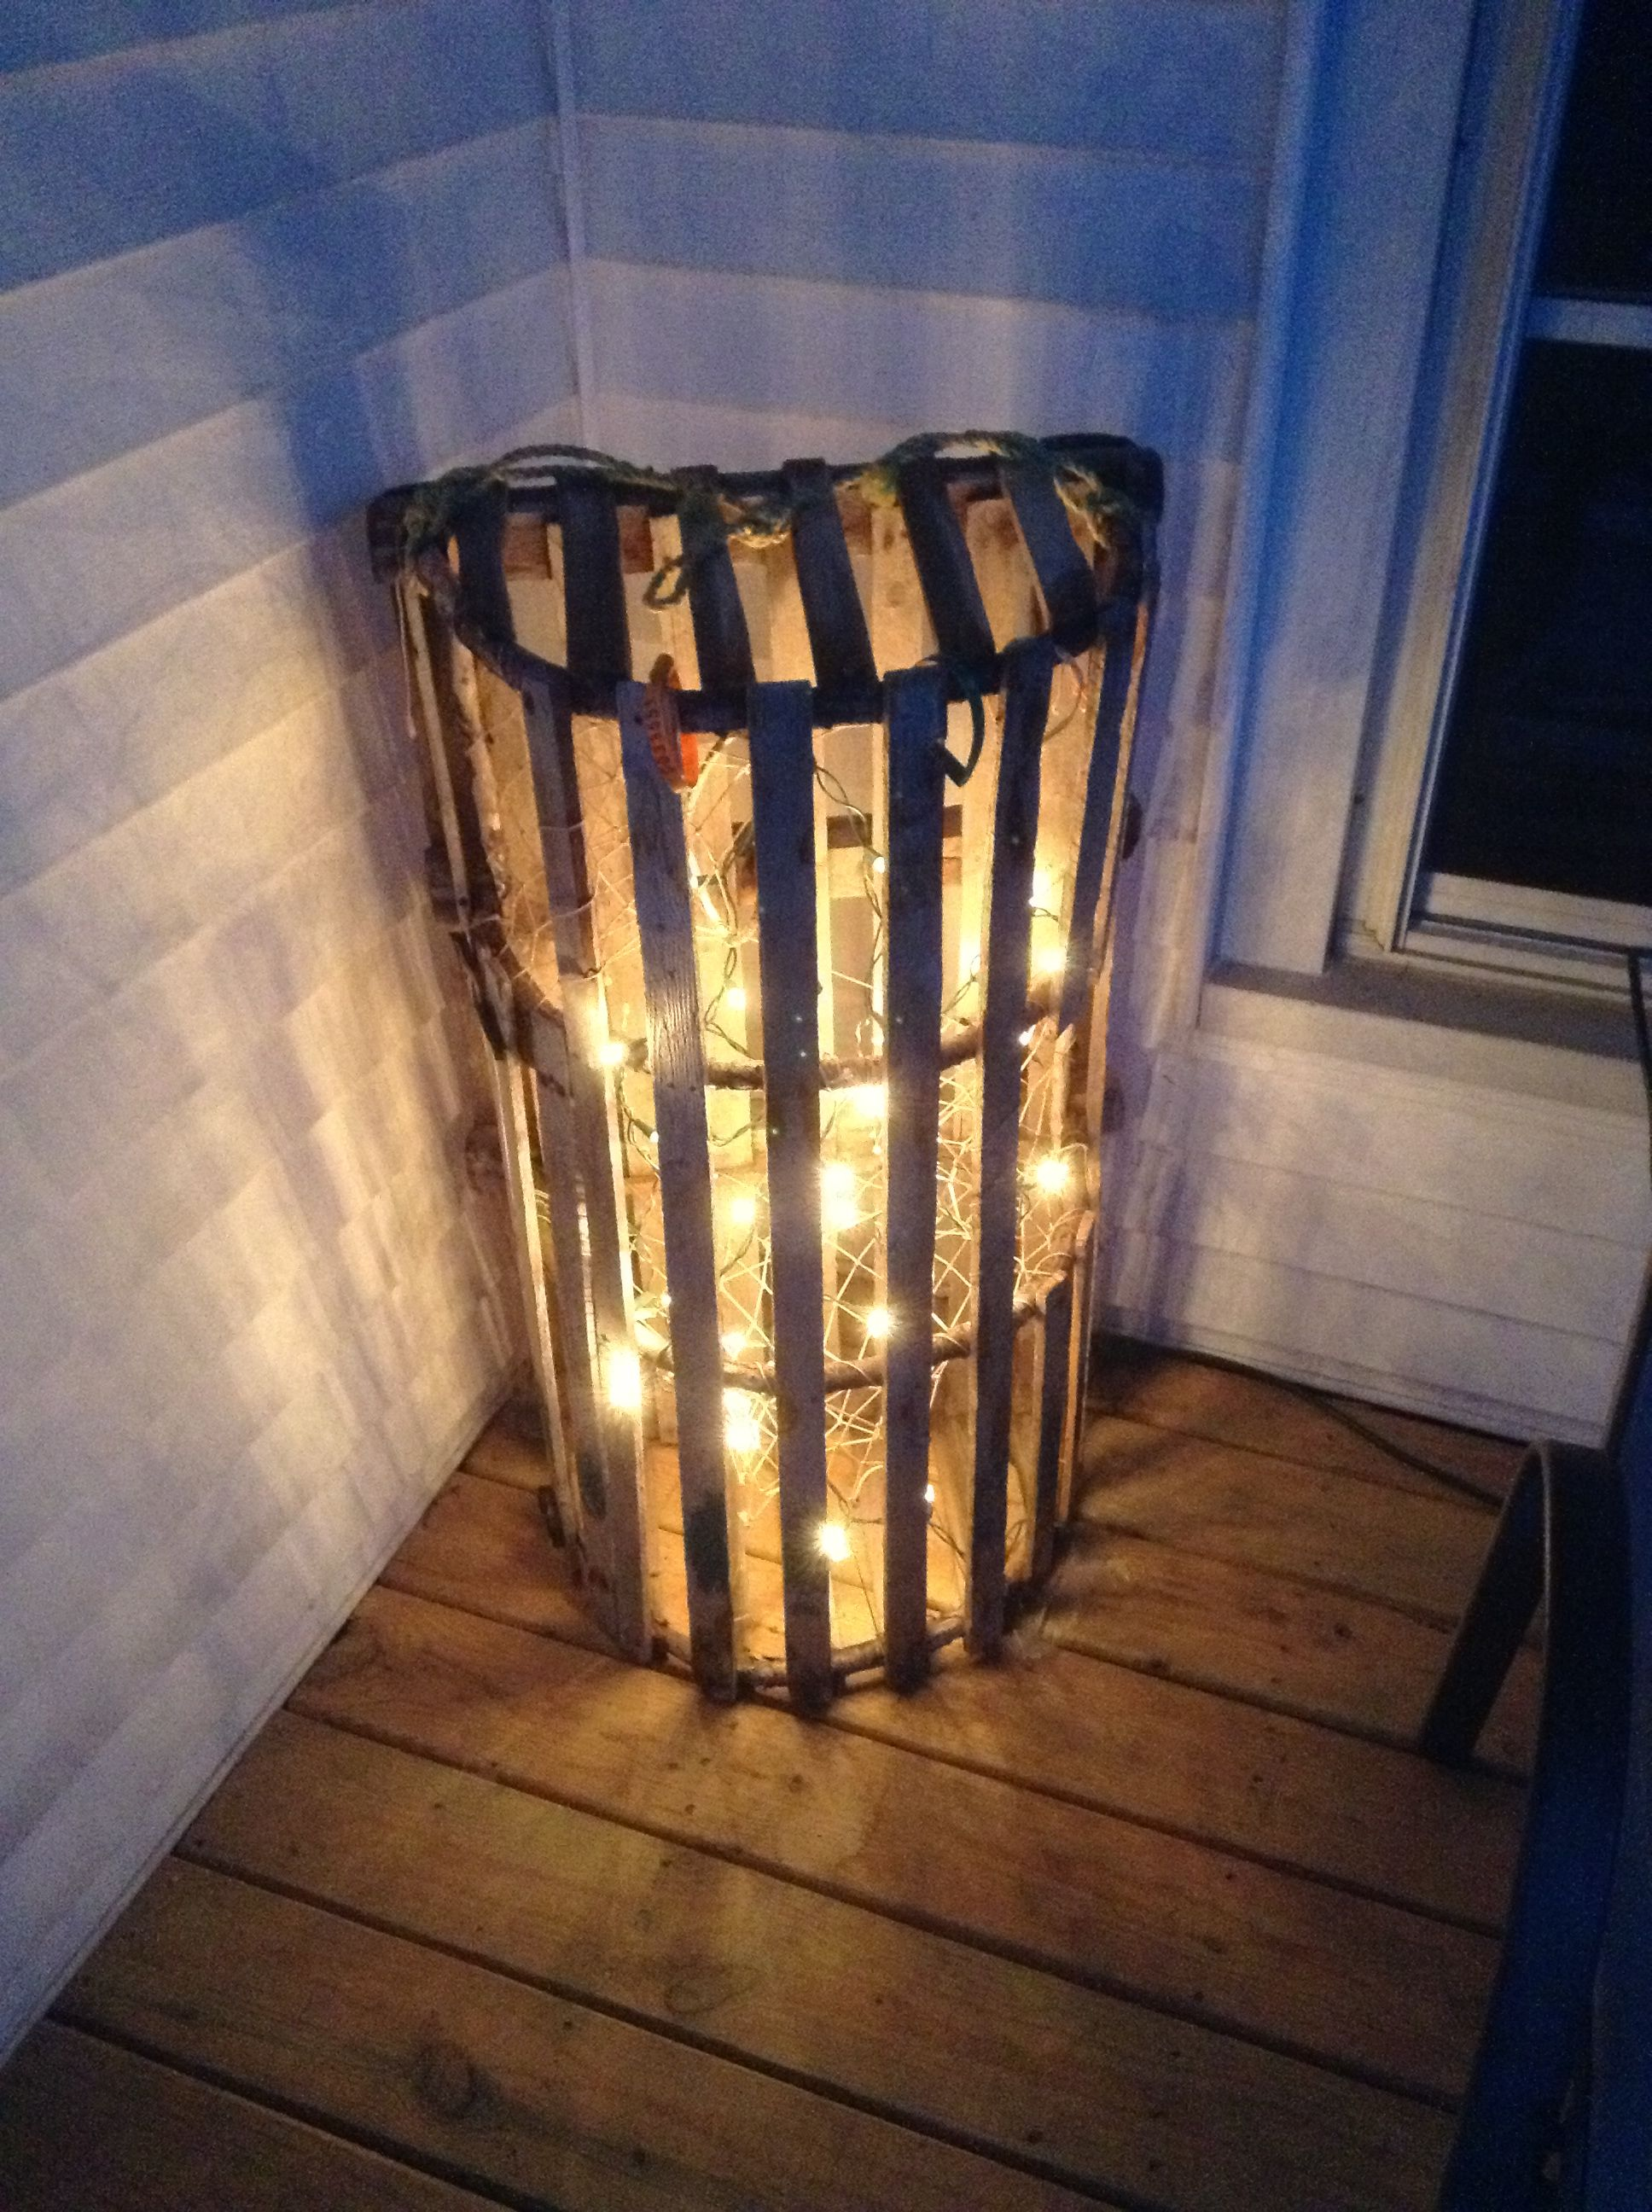 Lobster trap with Christmas lights. | Seaside collections | Pinterest | Lobster trap, Christmas ...